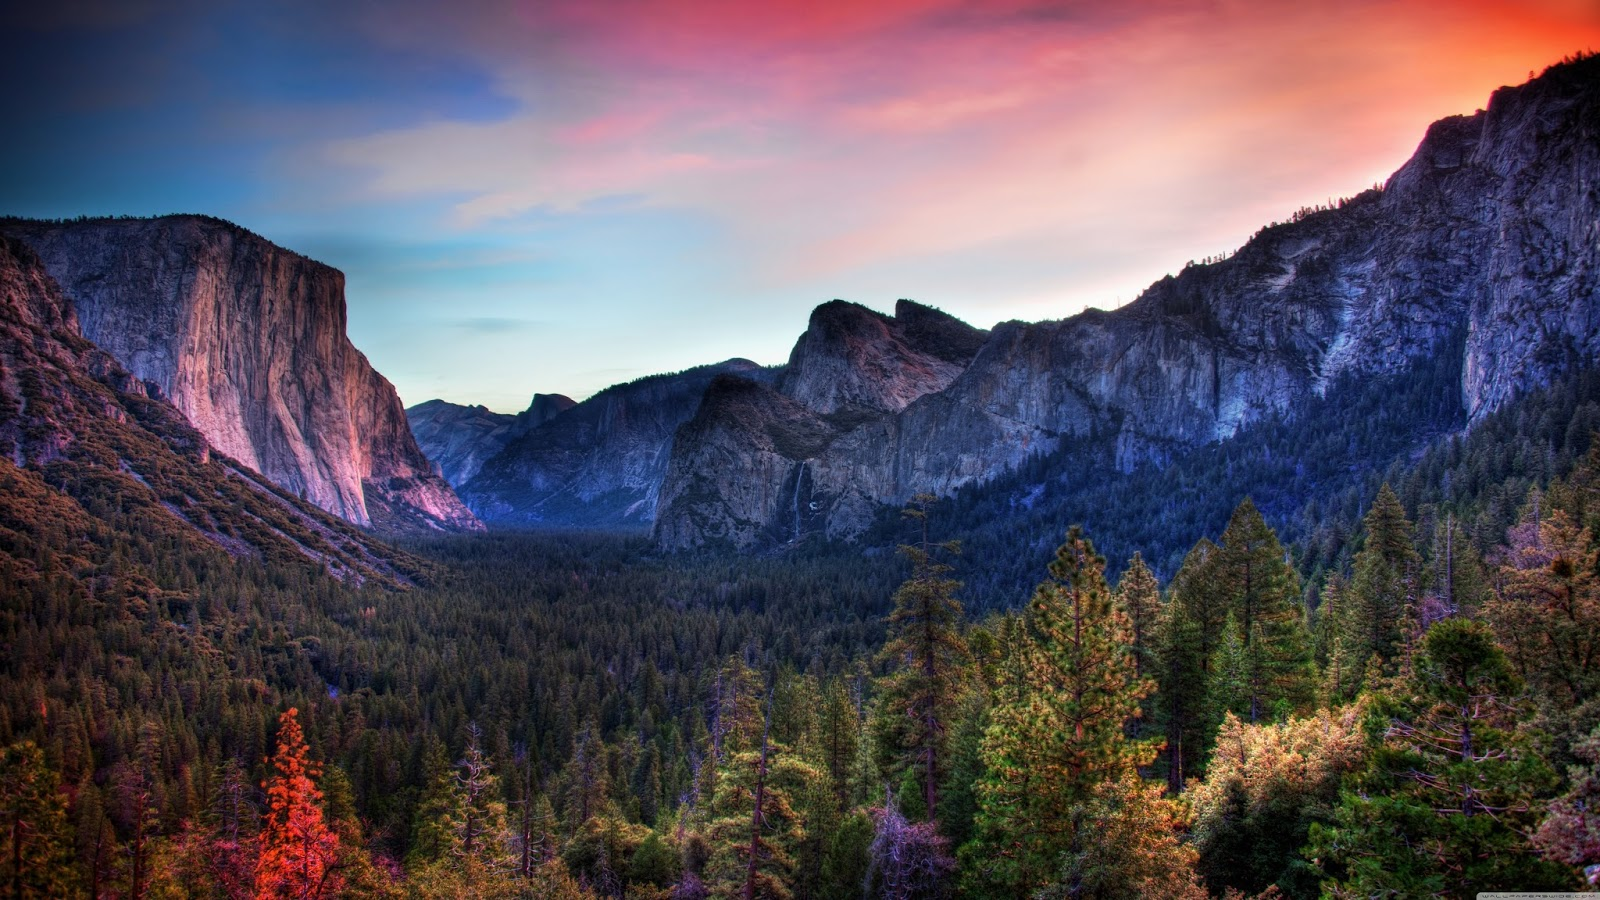 Wallpaper For Imac 27 Inch Posted By Christopher Mercado